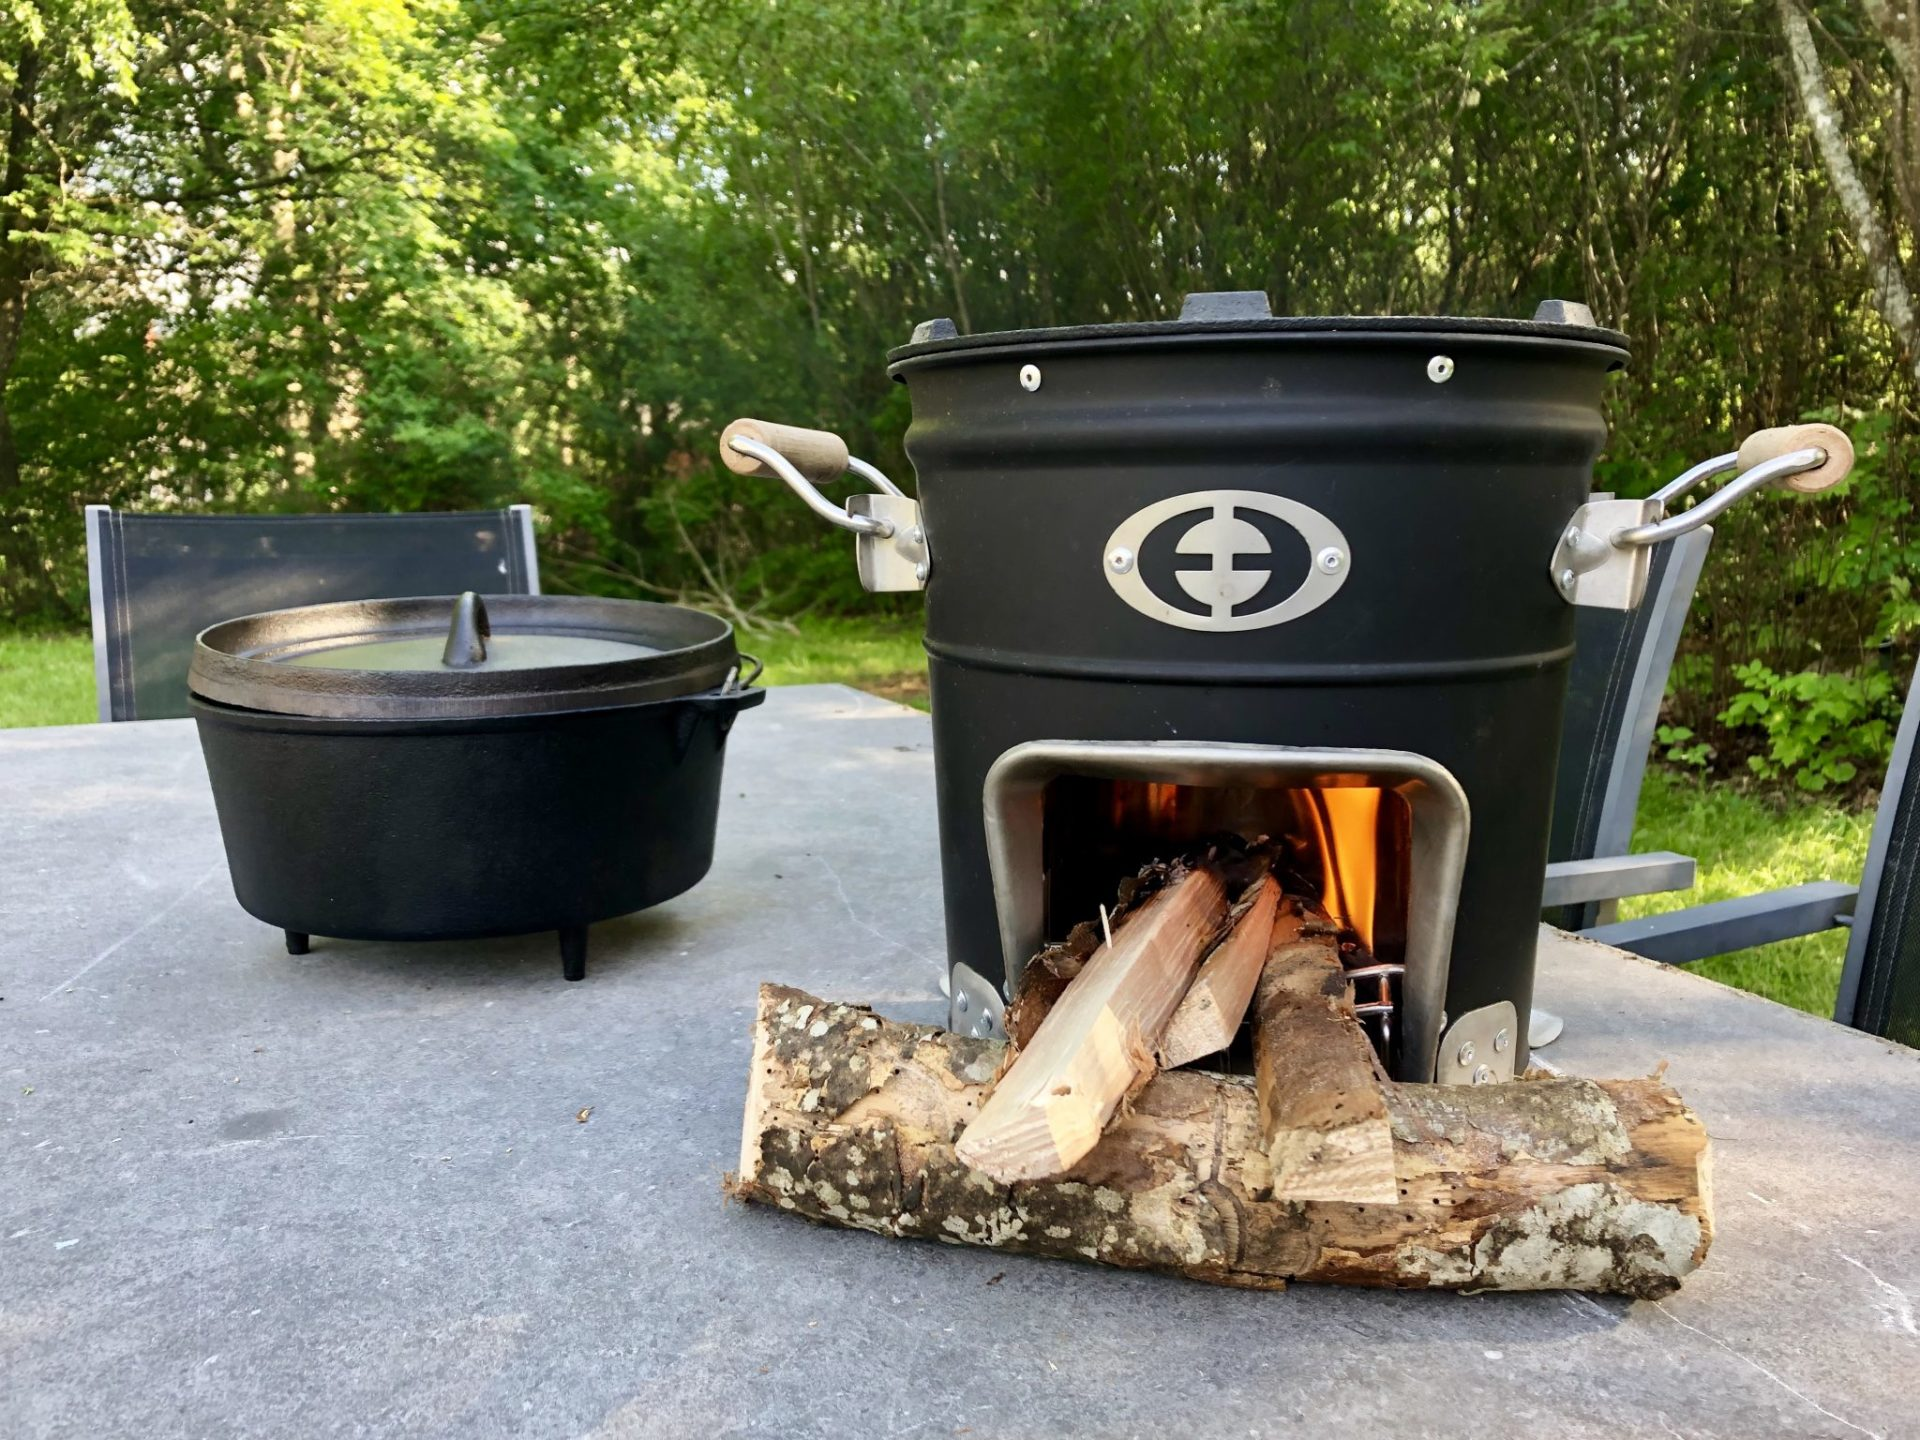 Mooi Gula Huset Outdoor Cooking